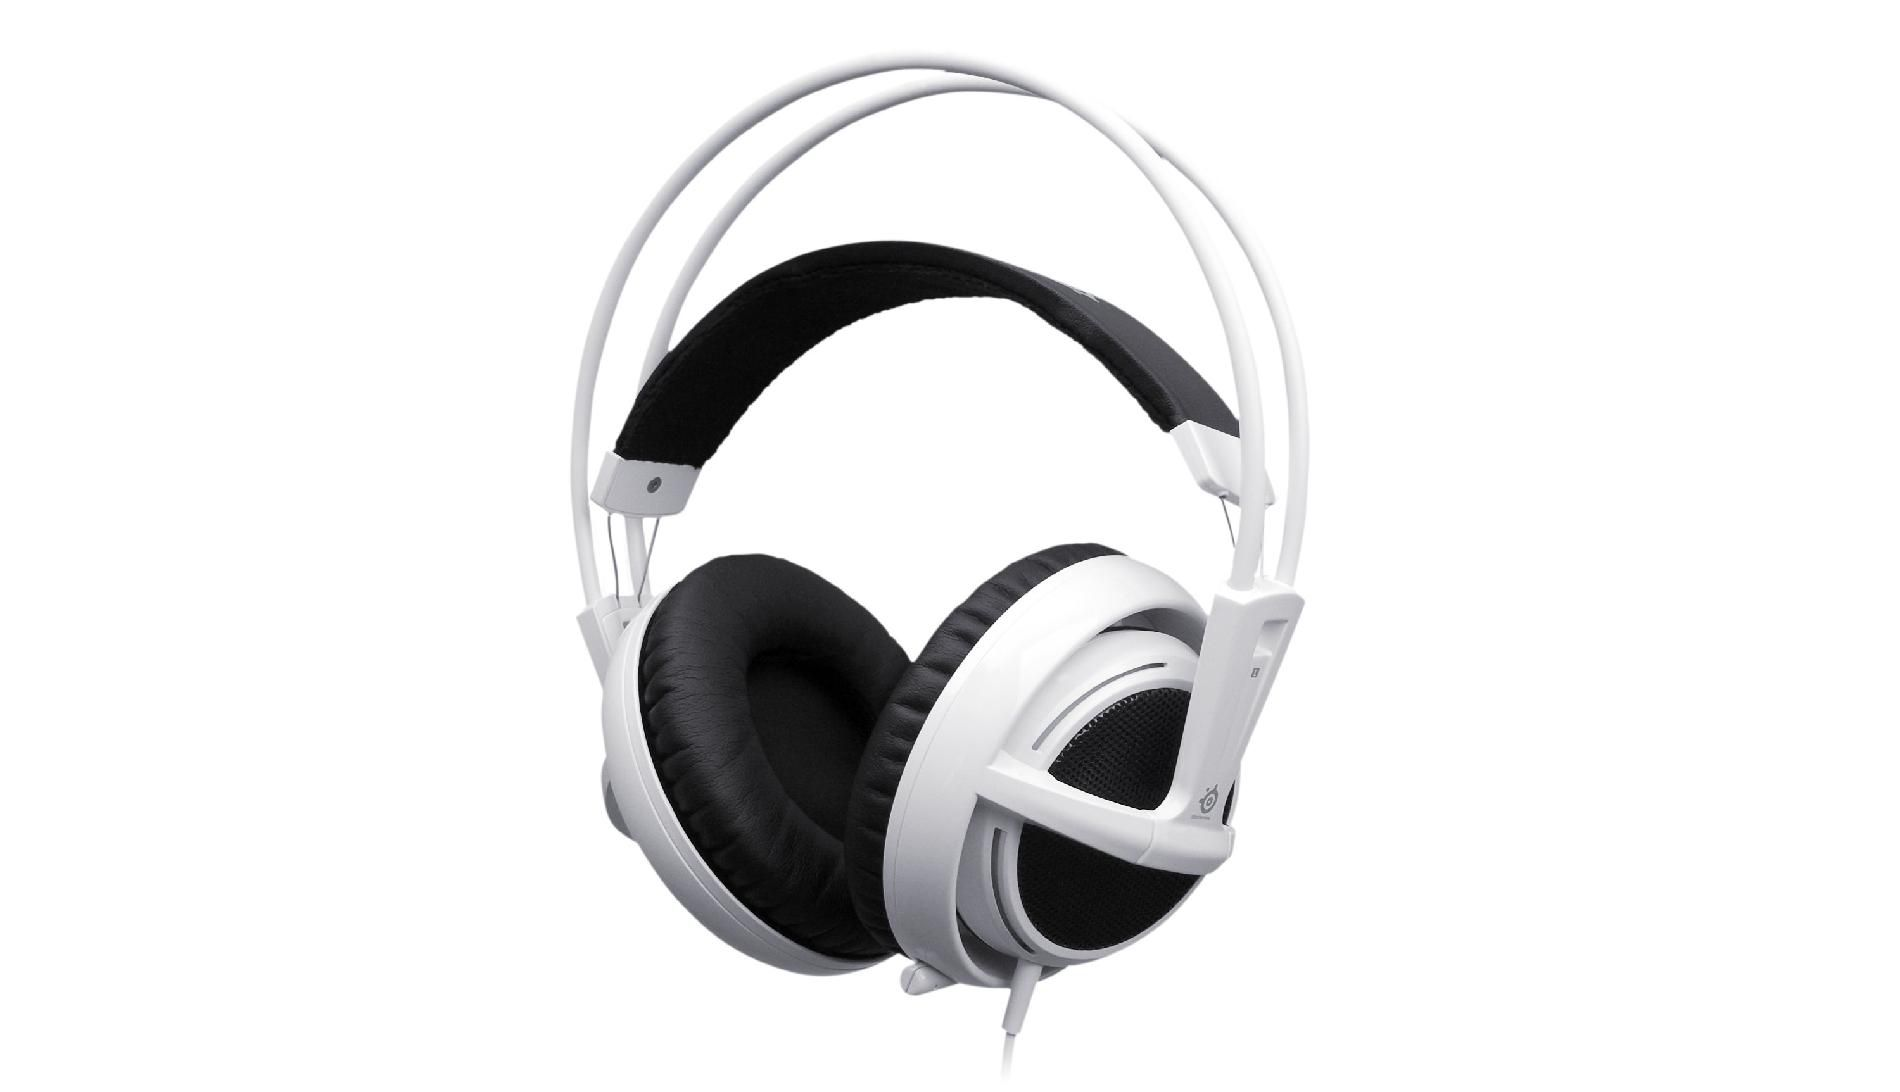 SteelSeries Siberia V2 Headset - White